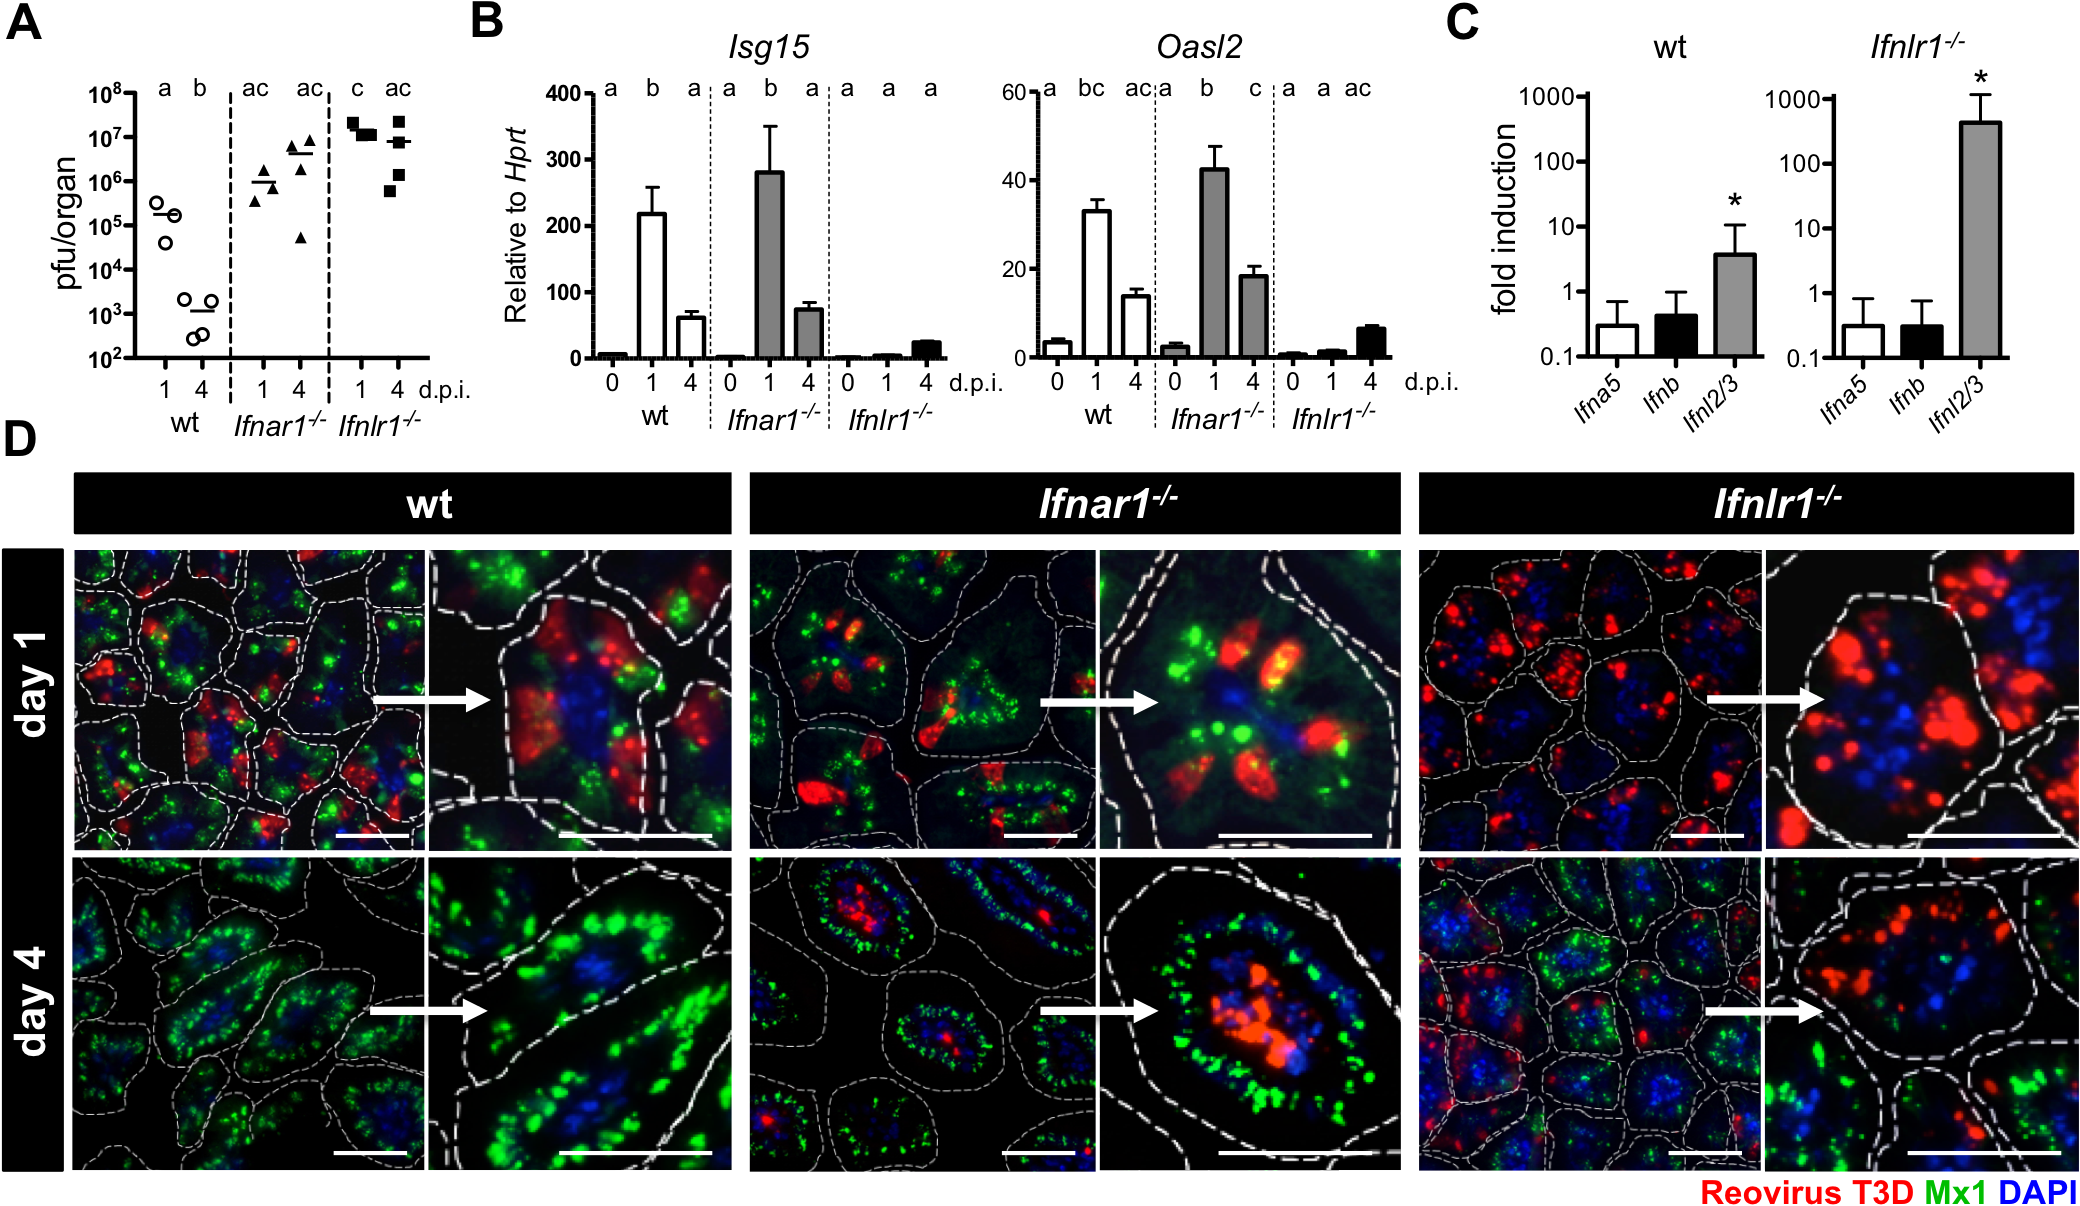 Timely IFN-λ production by epithelial cells drives rapid clearance of intestinal reovirus infection.